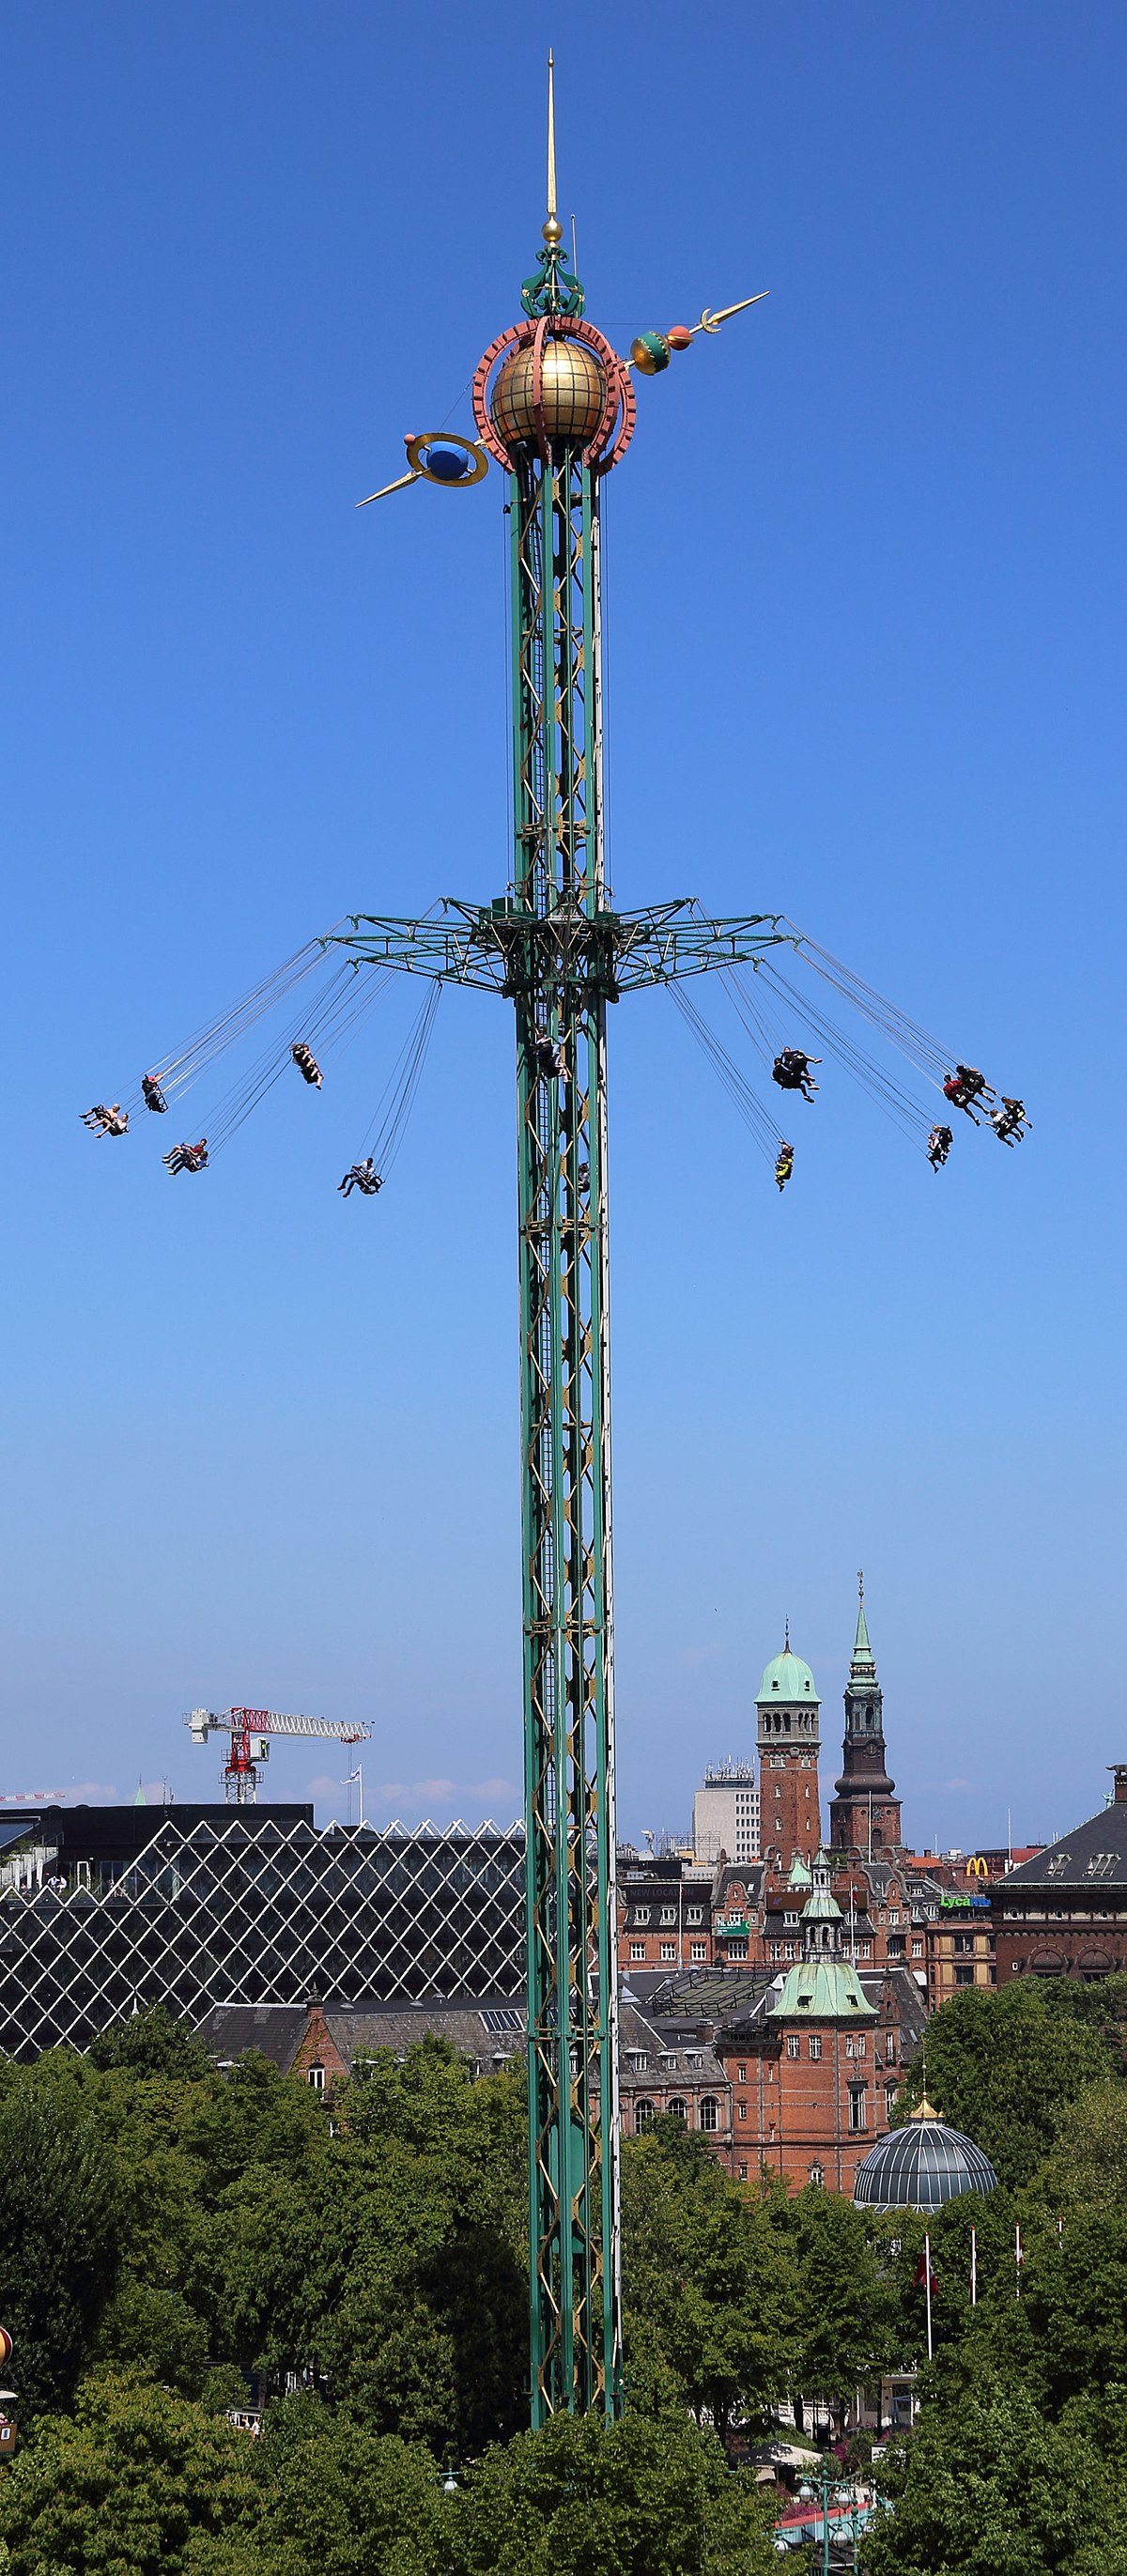 Tivoli World Amusement Park Star Flyer (tivoli Gardens) - Wikipedia